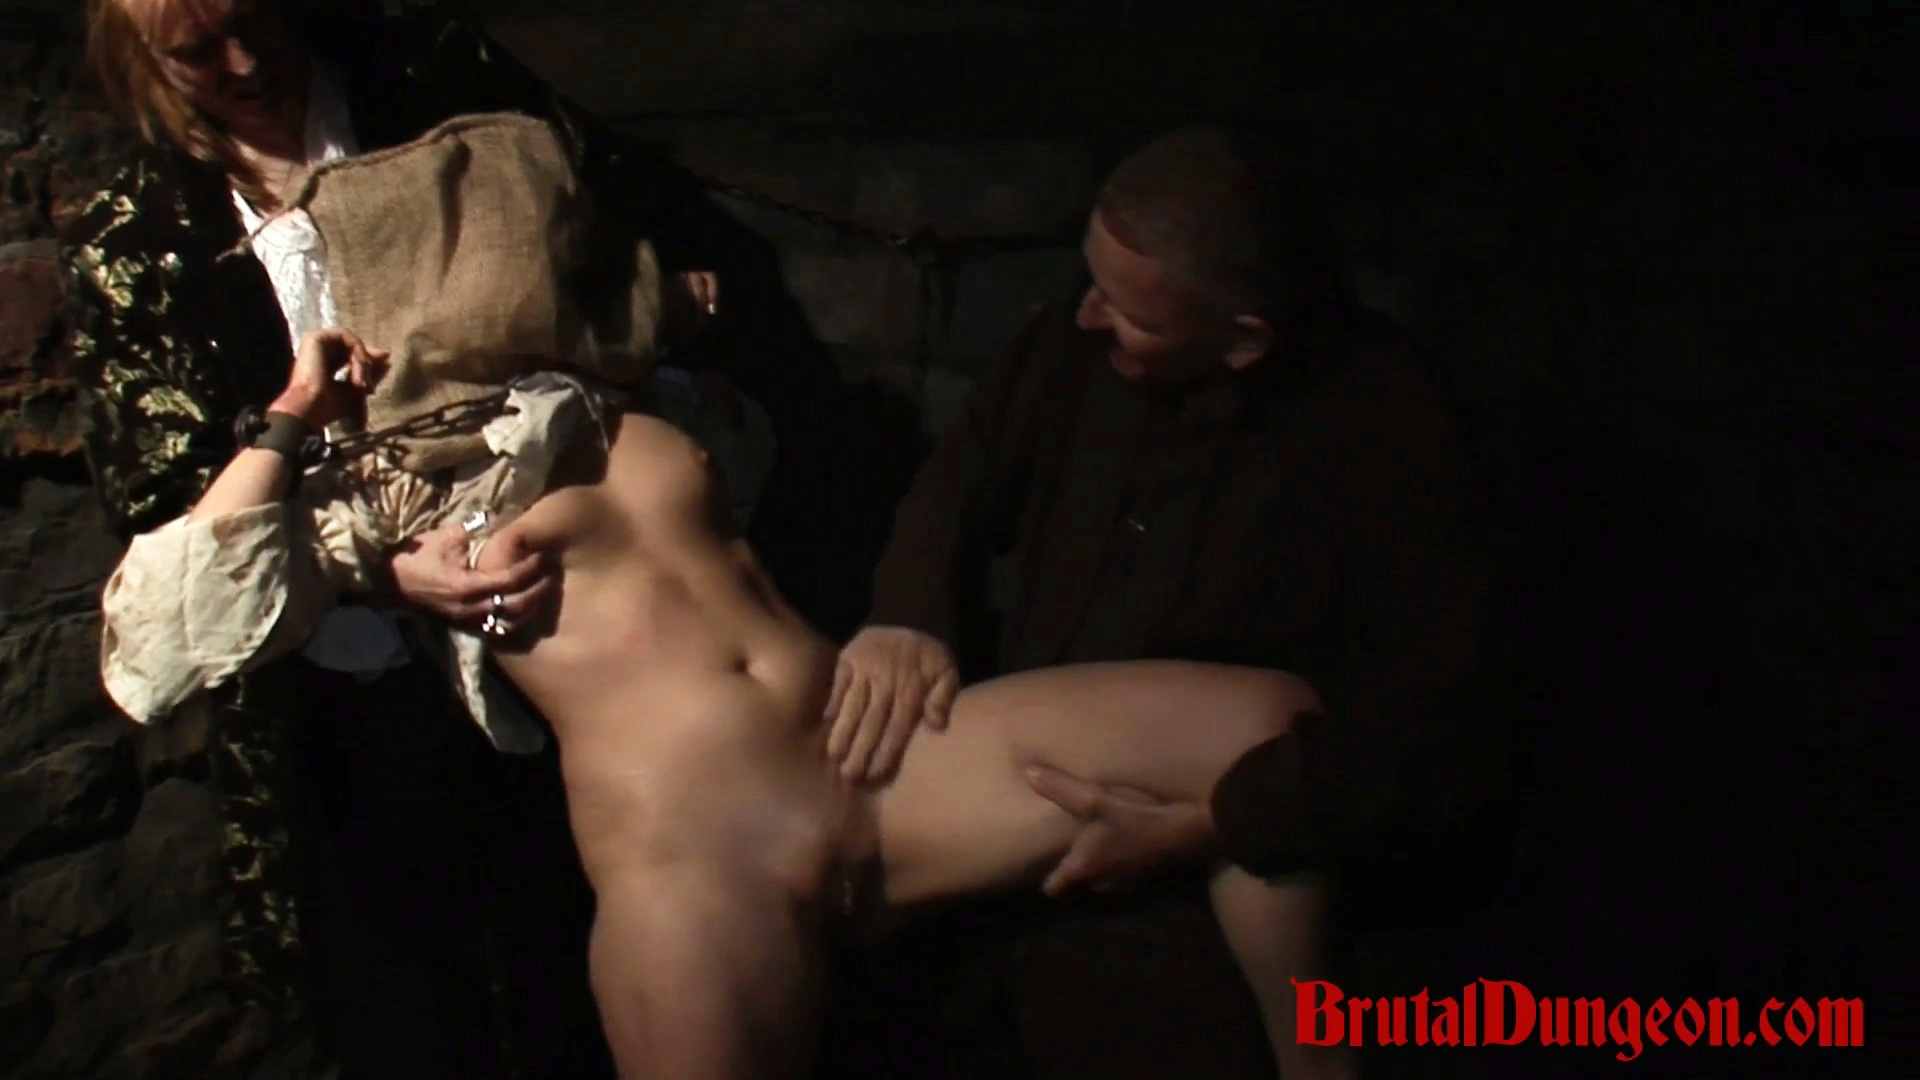 Blonde amalia is imprisoned for bdsm gang bang. In our dungeon, a young blonde wench is left without any water. For a few drops of water she would do anything, even she will have to stand any kind of mistreatment to satisfy her thirst. She must endure imprisonment, bondage, domination, BDSM fun, gang bang, blindfold, spanking, fingering, tit and pussy torment.